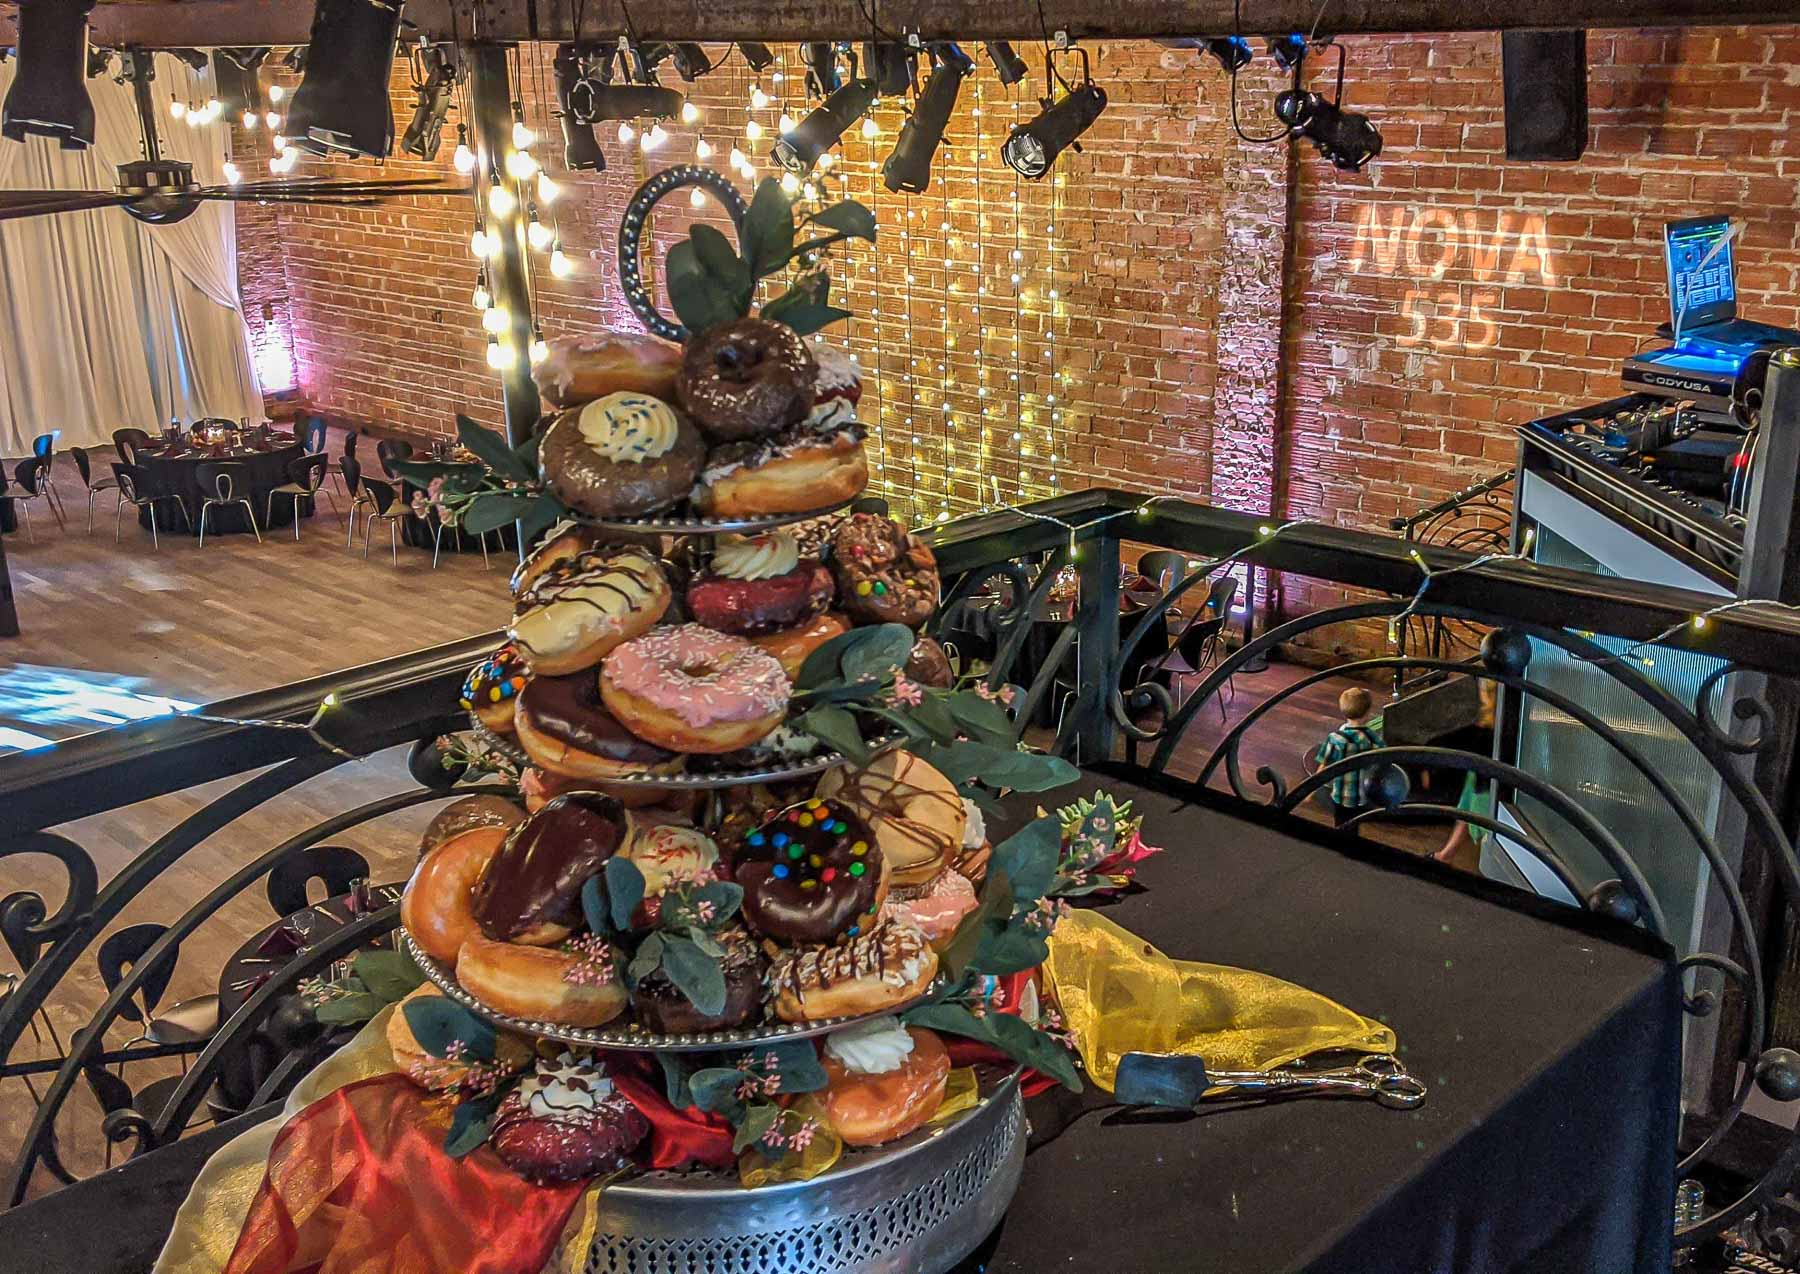 On Saturday, February 22, 2020, we hosted a lovely Courtyard Wedding Sweet Themed Reception at historic downtown St. Pete, Florida venue NOVA 535